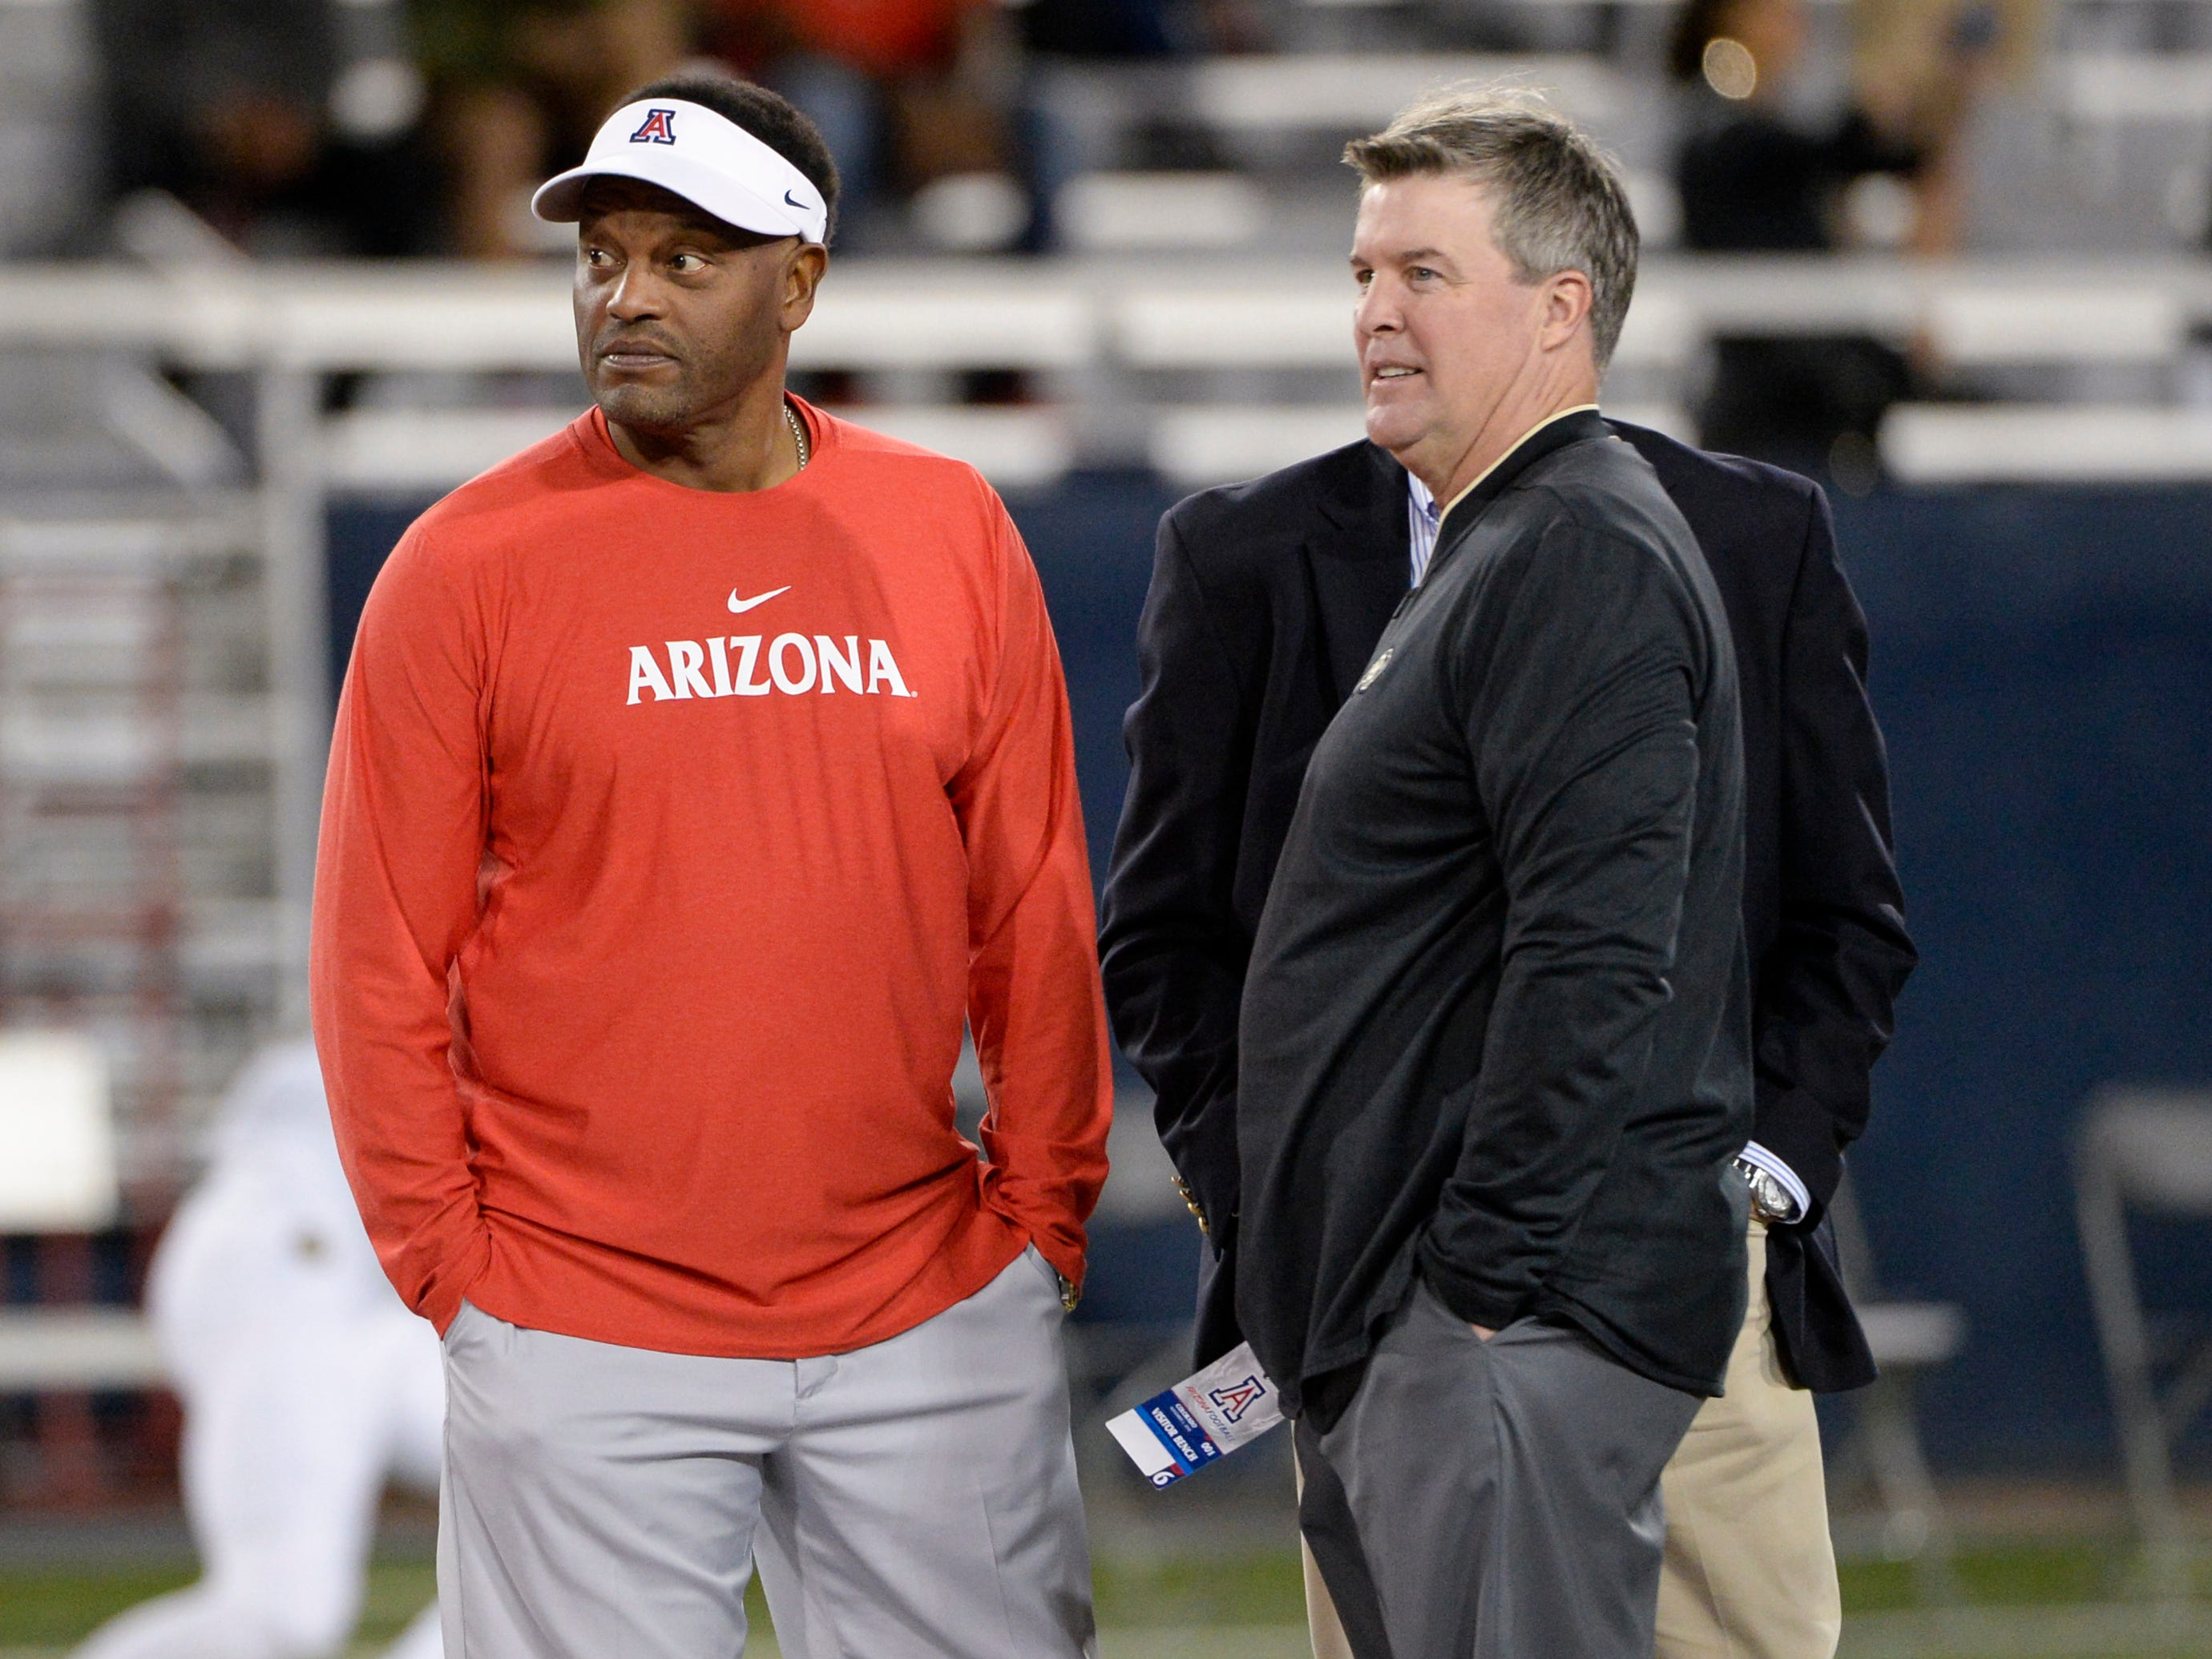 Nov 2, 2018; Tucson, AZ, USA; Arizona Wildcats head coach Kevin Sumlin (left) and Colorado Buffaloes head coach Mike MacIntyre (right) talk before a game at Arizona Stadium.